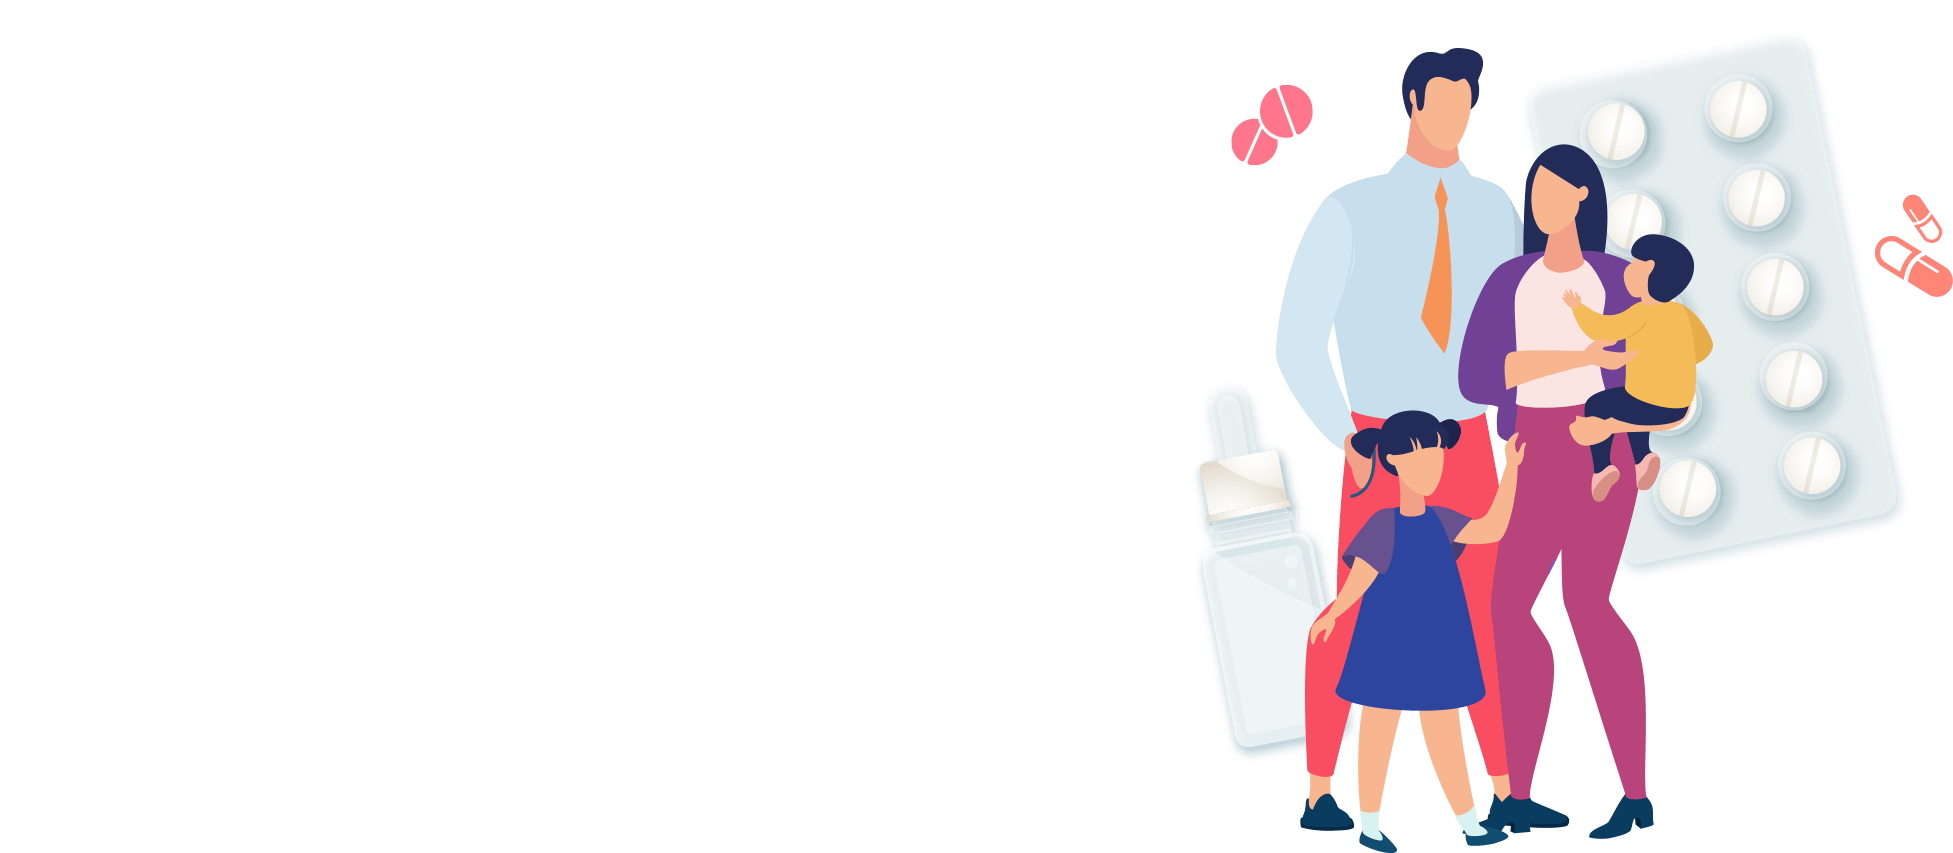 Medication Safety Tips: A Guide to Protecting Children